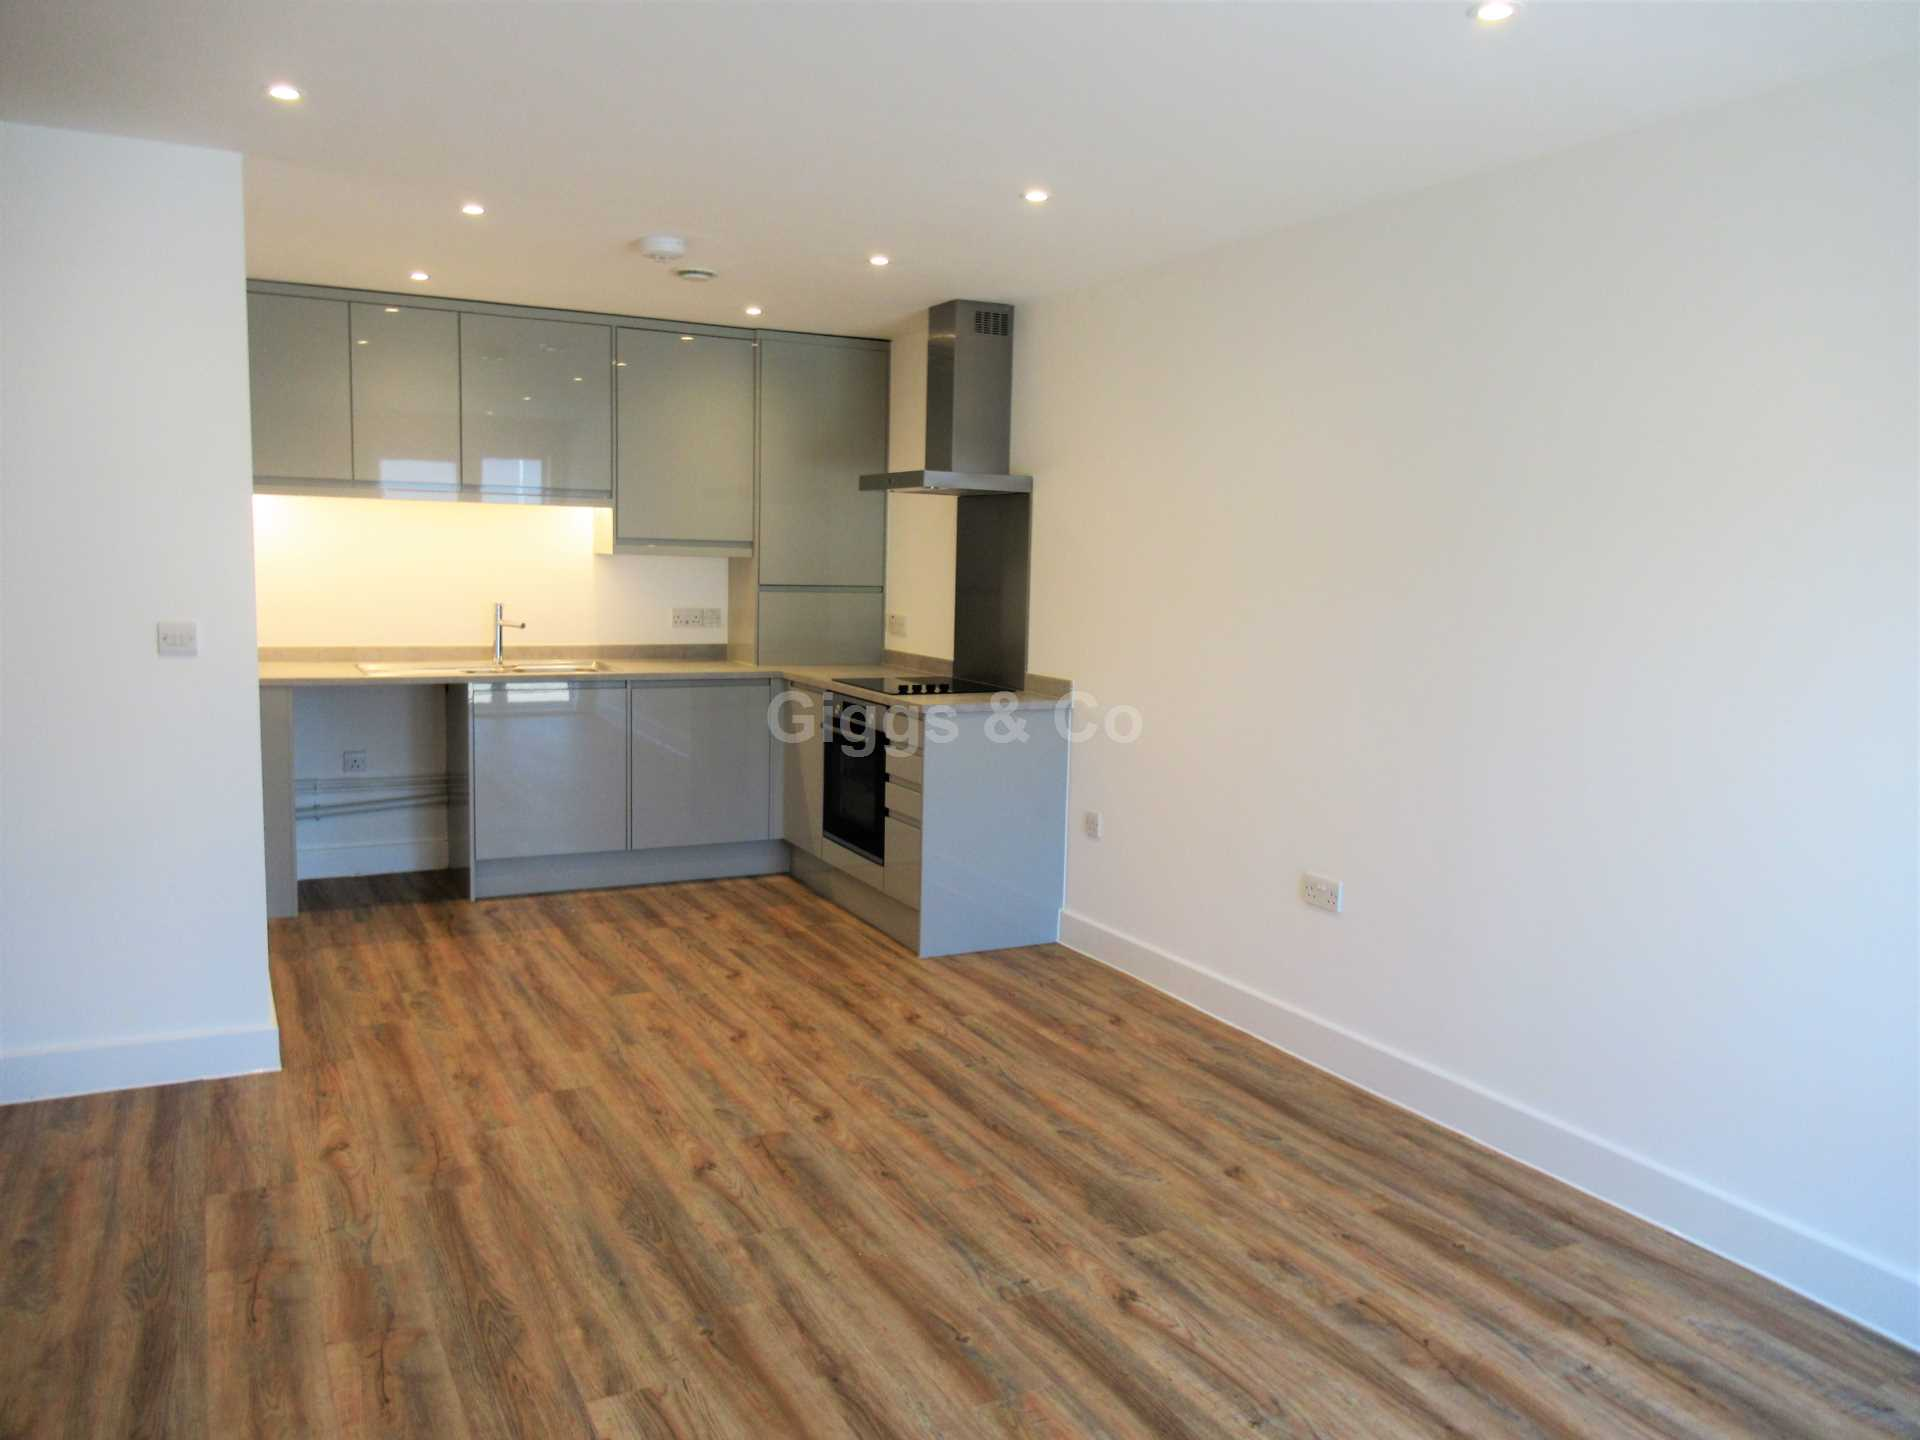 1 bed apartment to rent in Drovers Place, Huntingdon 1